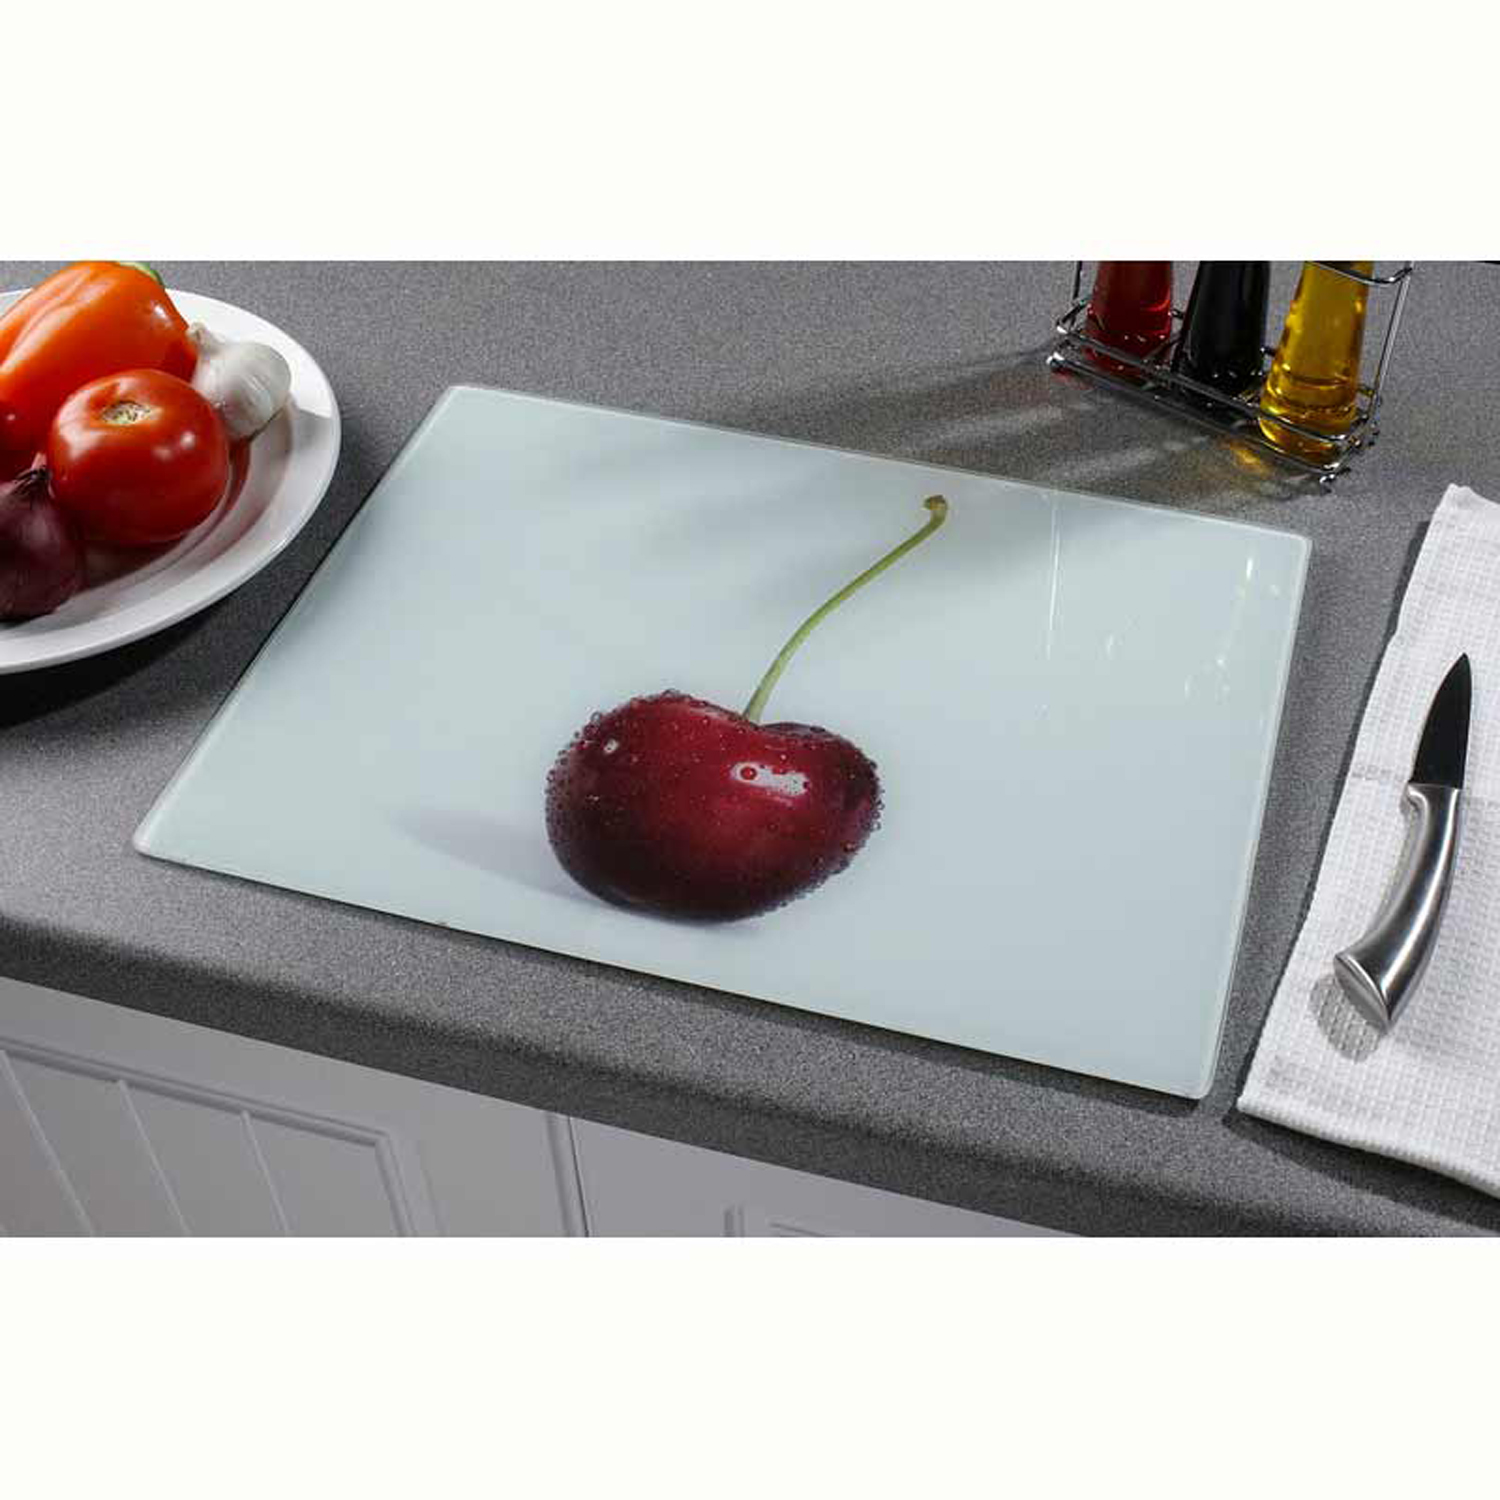 Glass Worktop Saver Cherry - Home Store + More